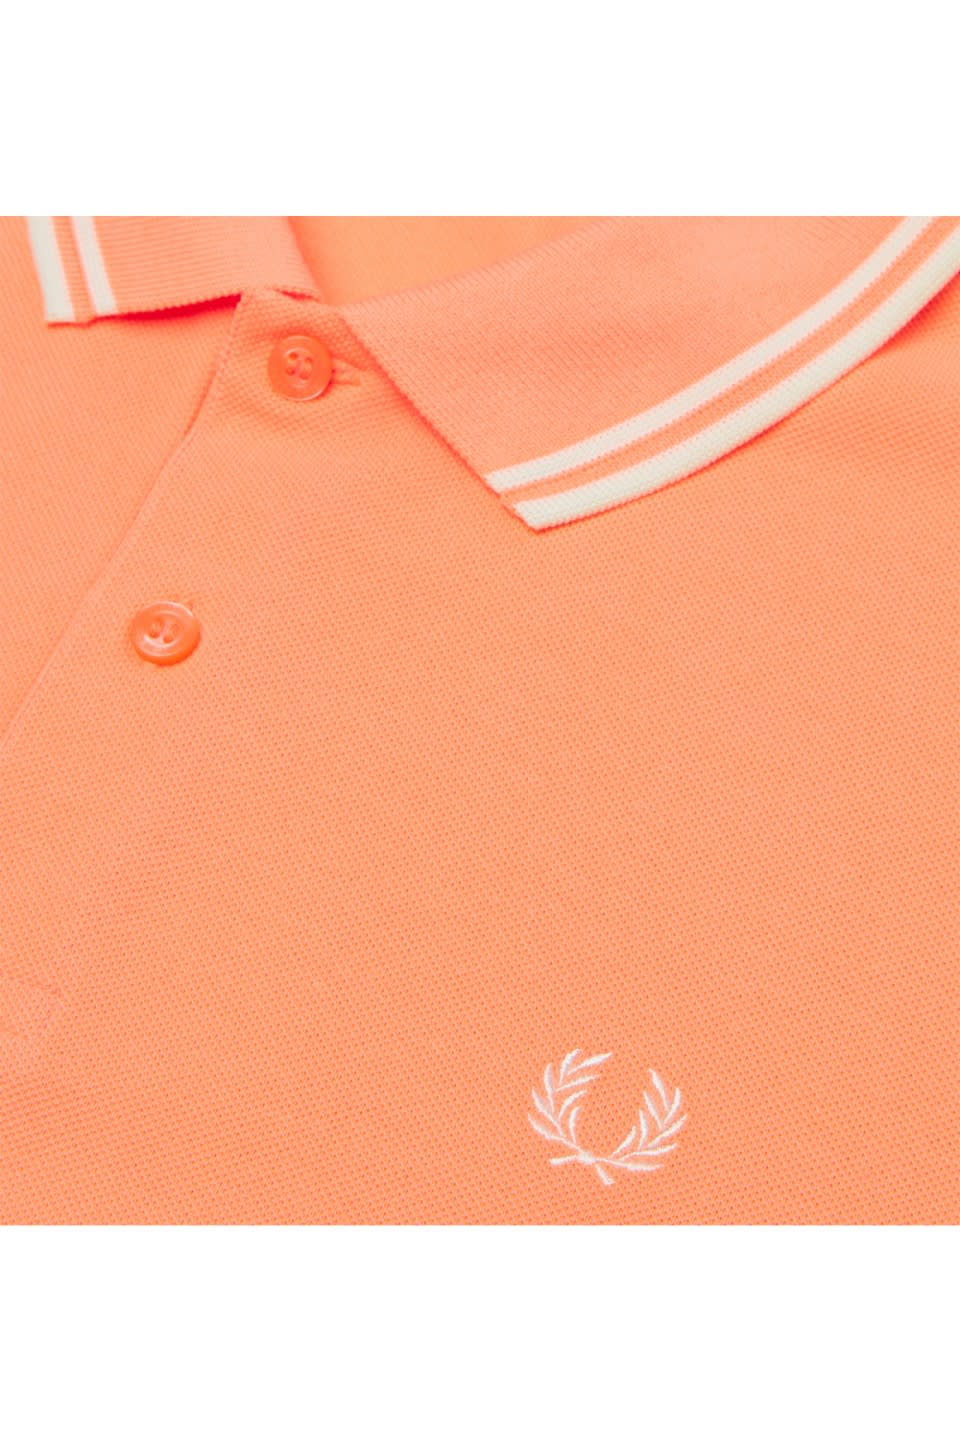 89a0af47 Fred Perry M3600 Nectar Polo Shirt